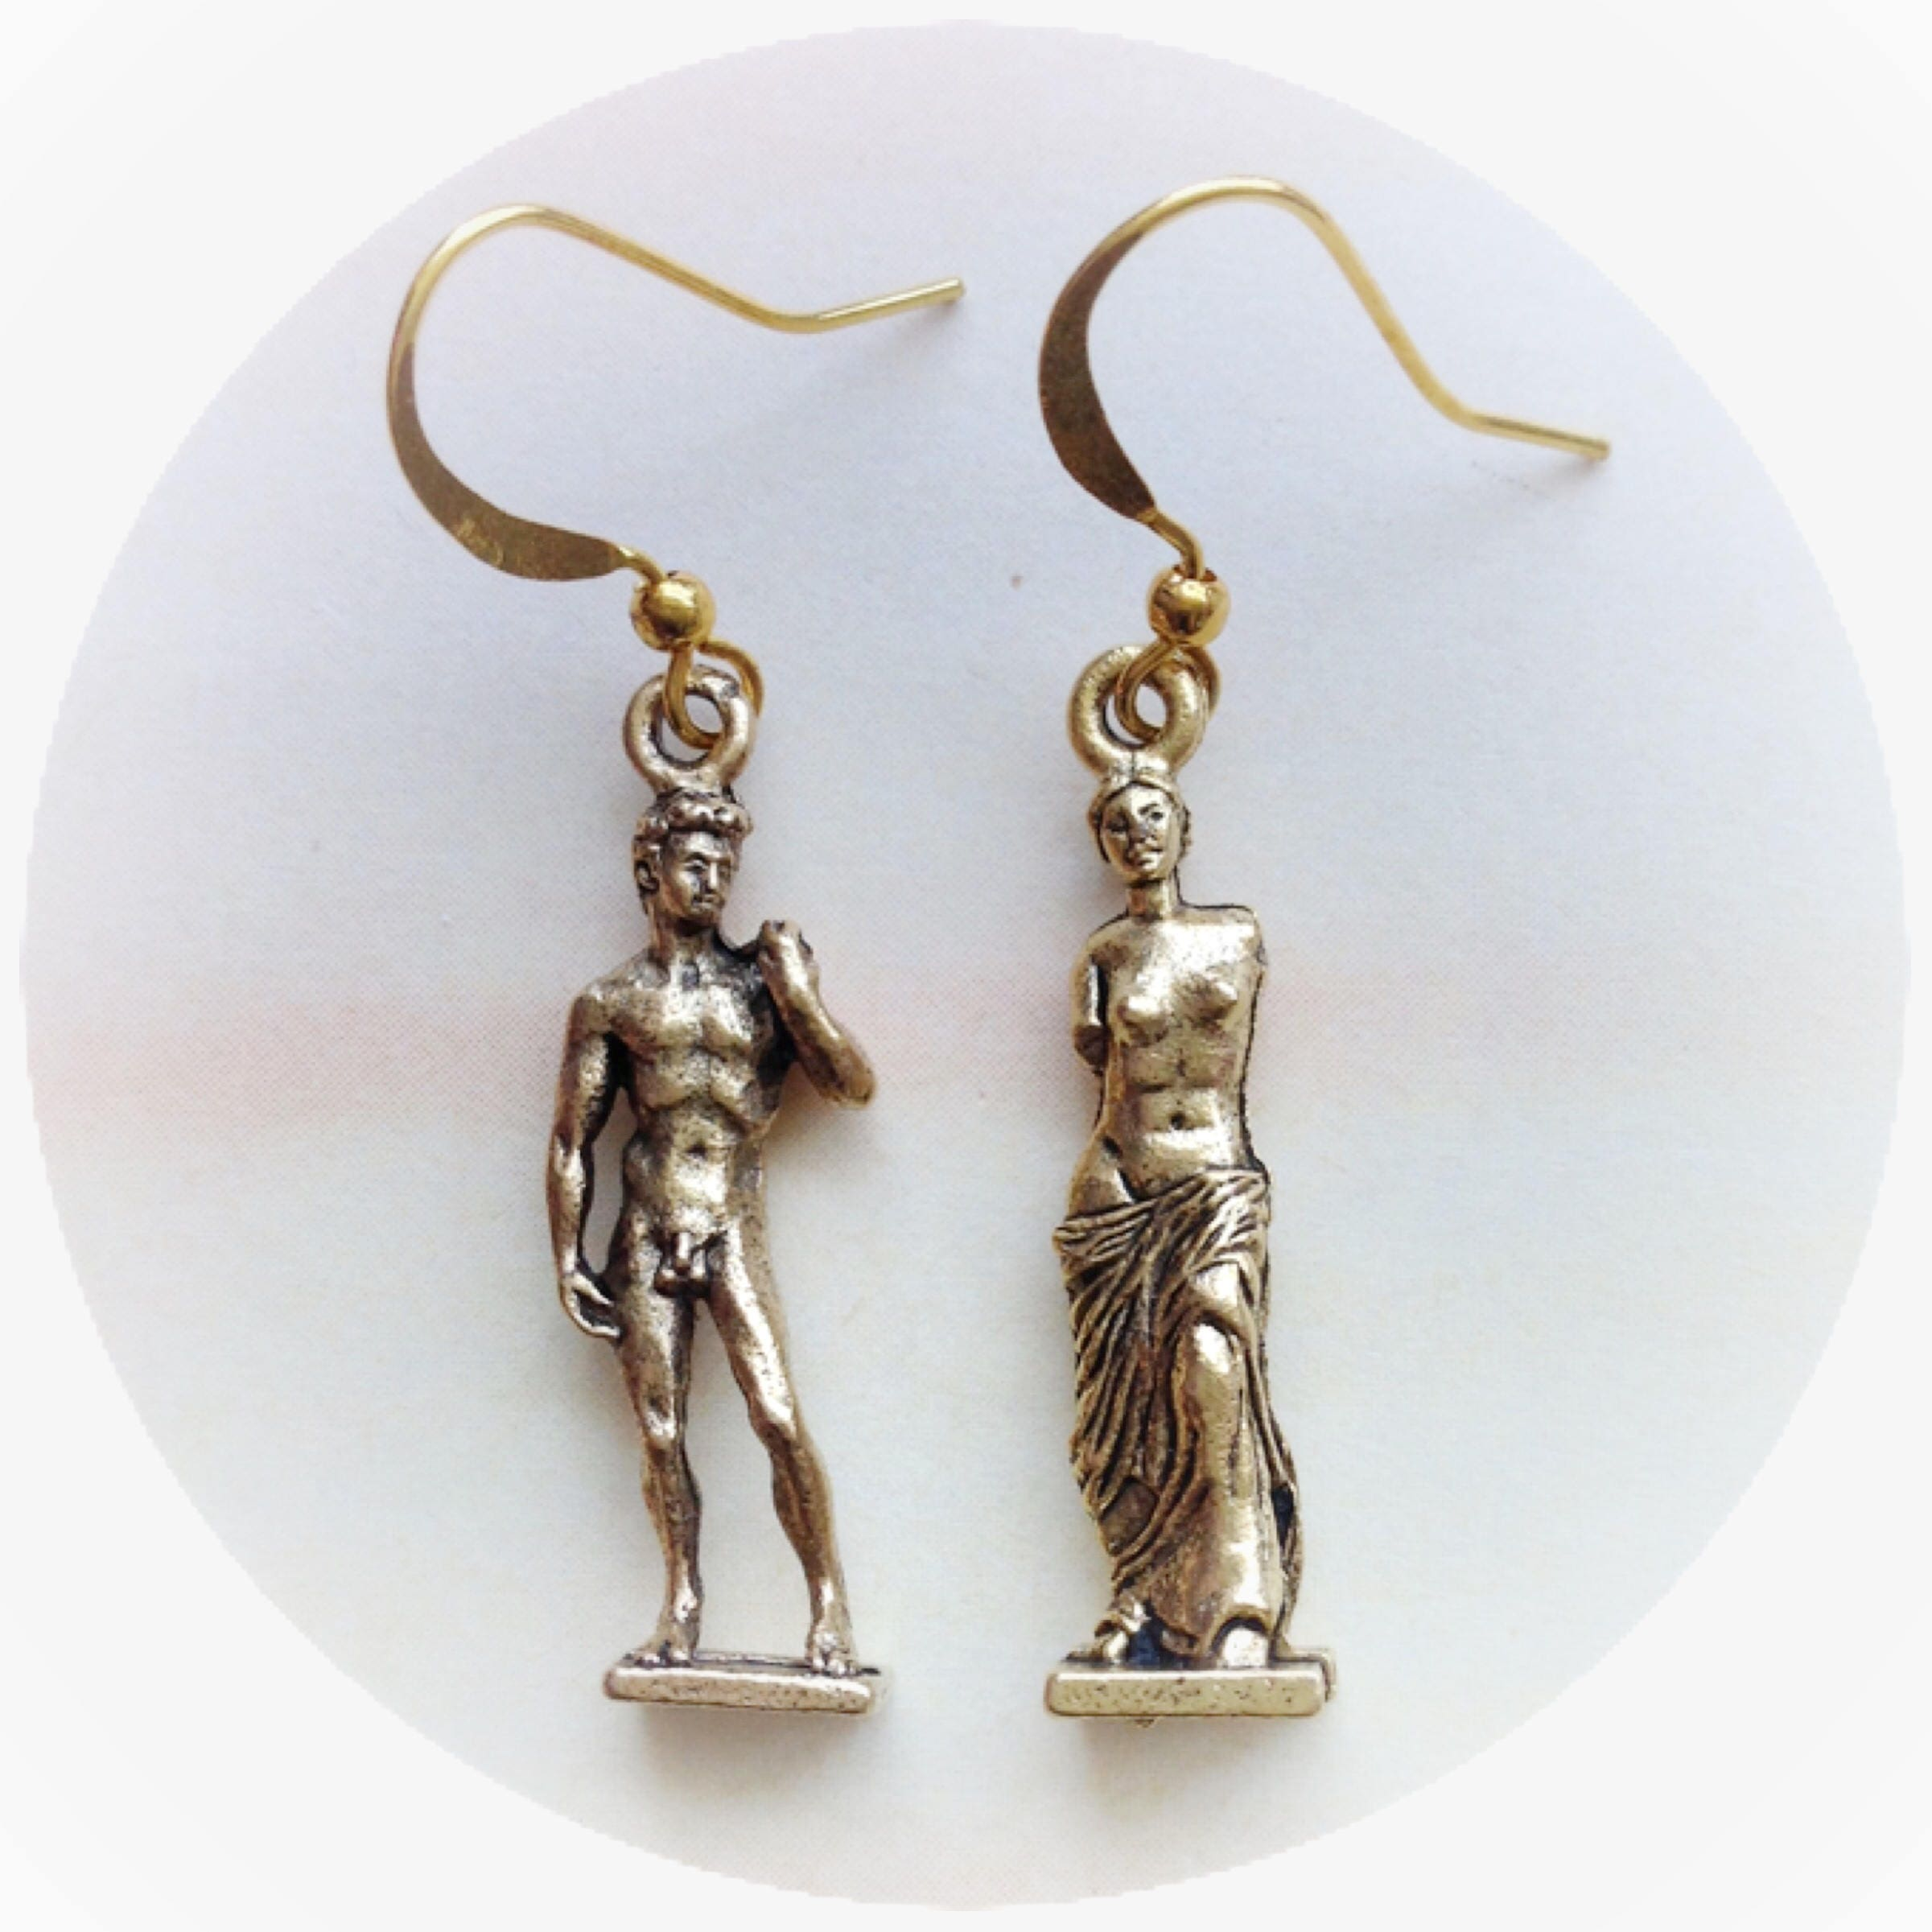 pair hb heilbrunn art works b work earrings of history toah timeline